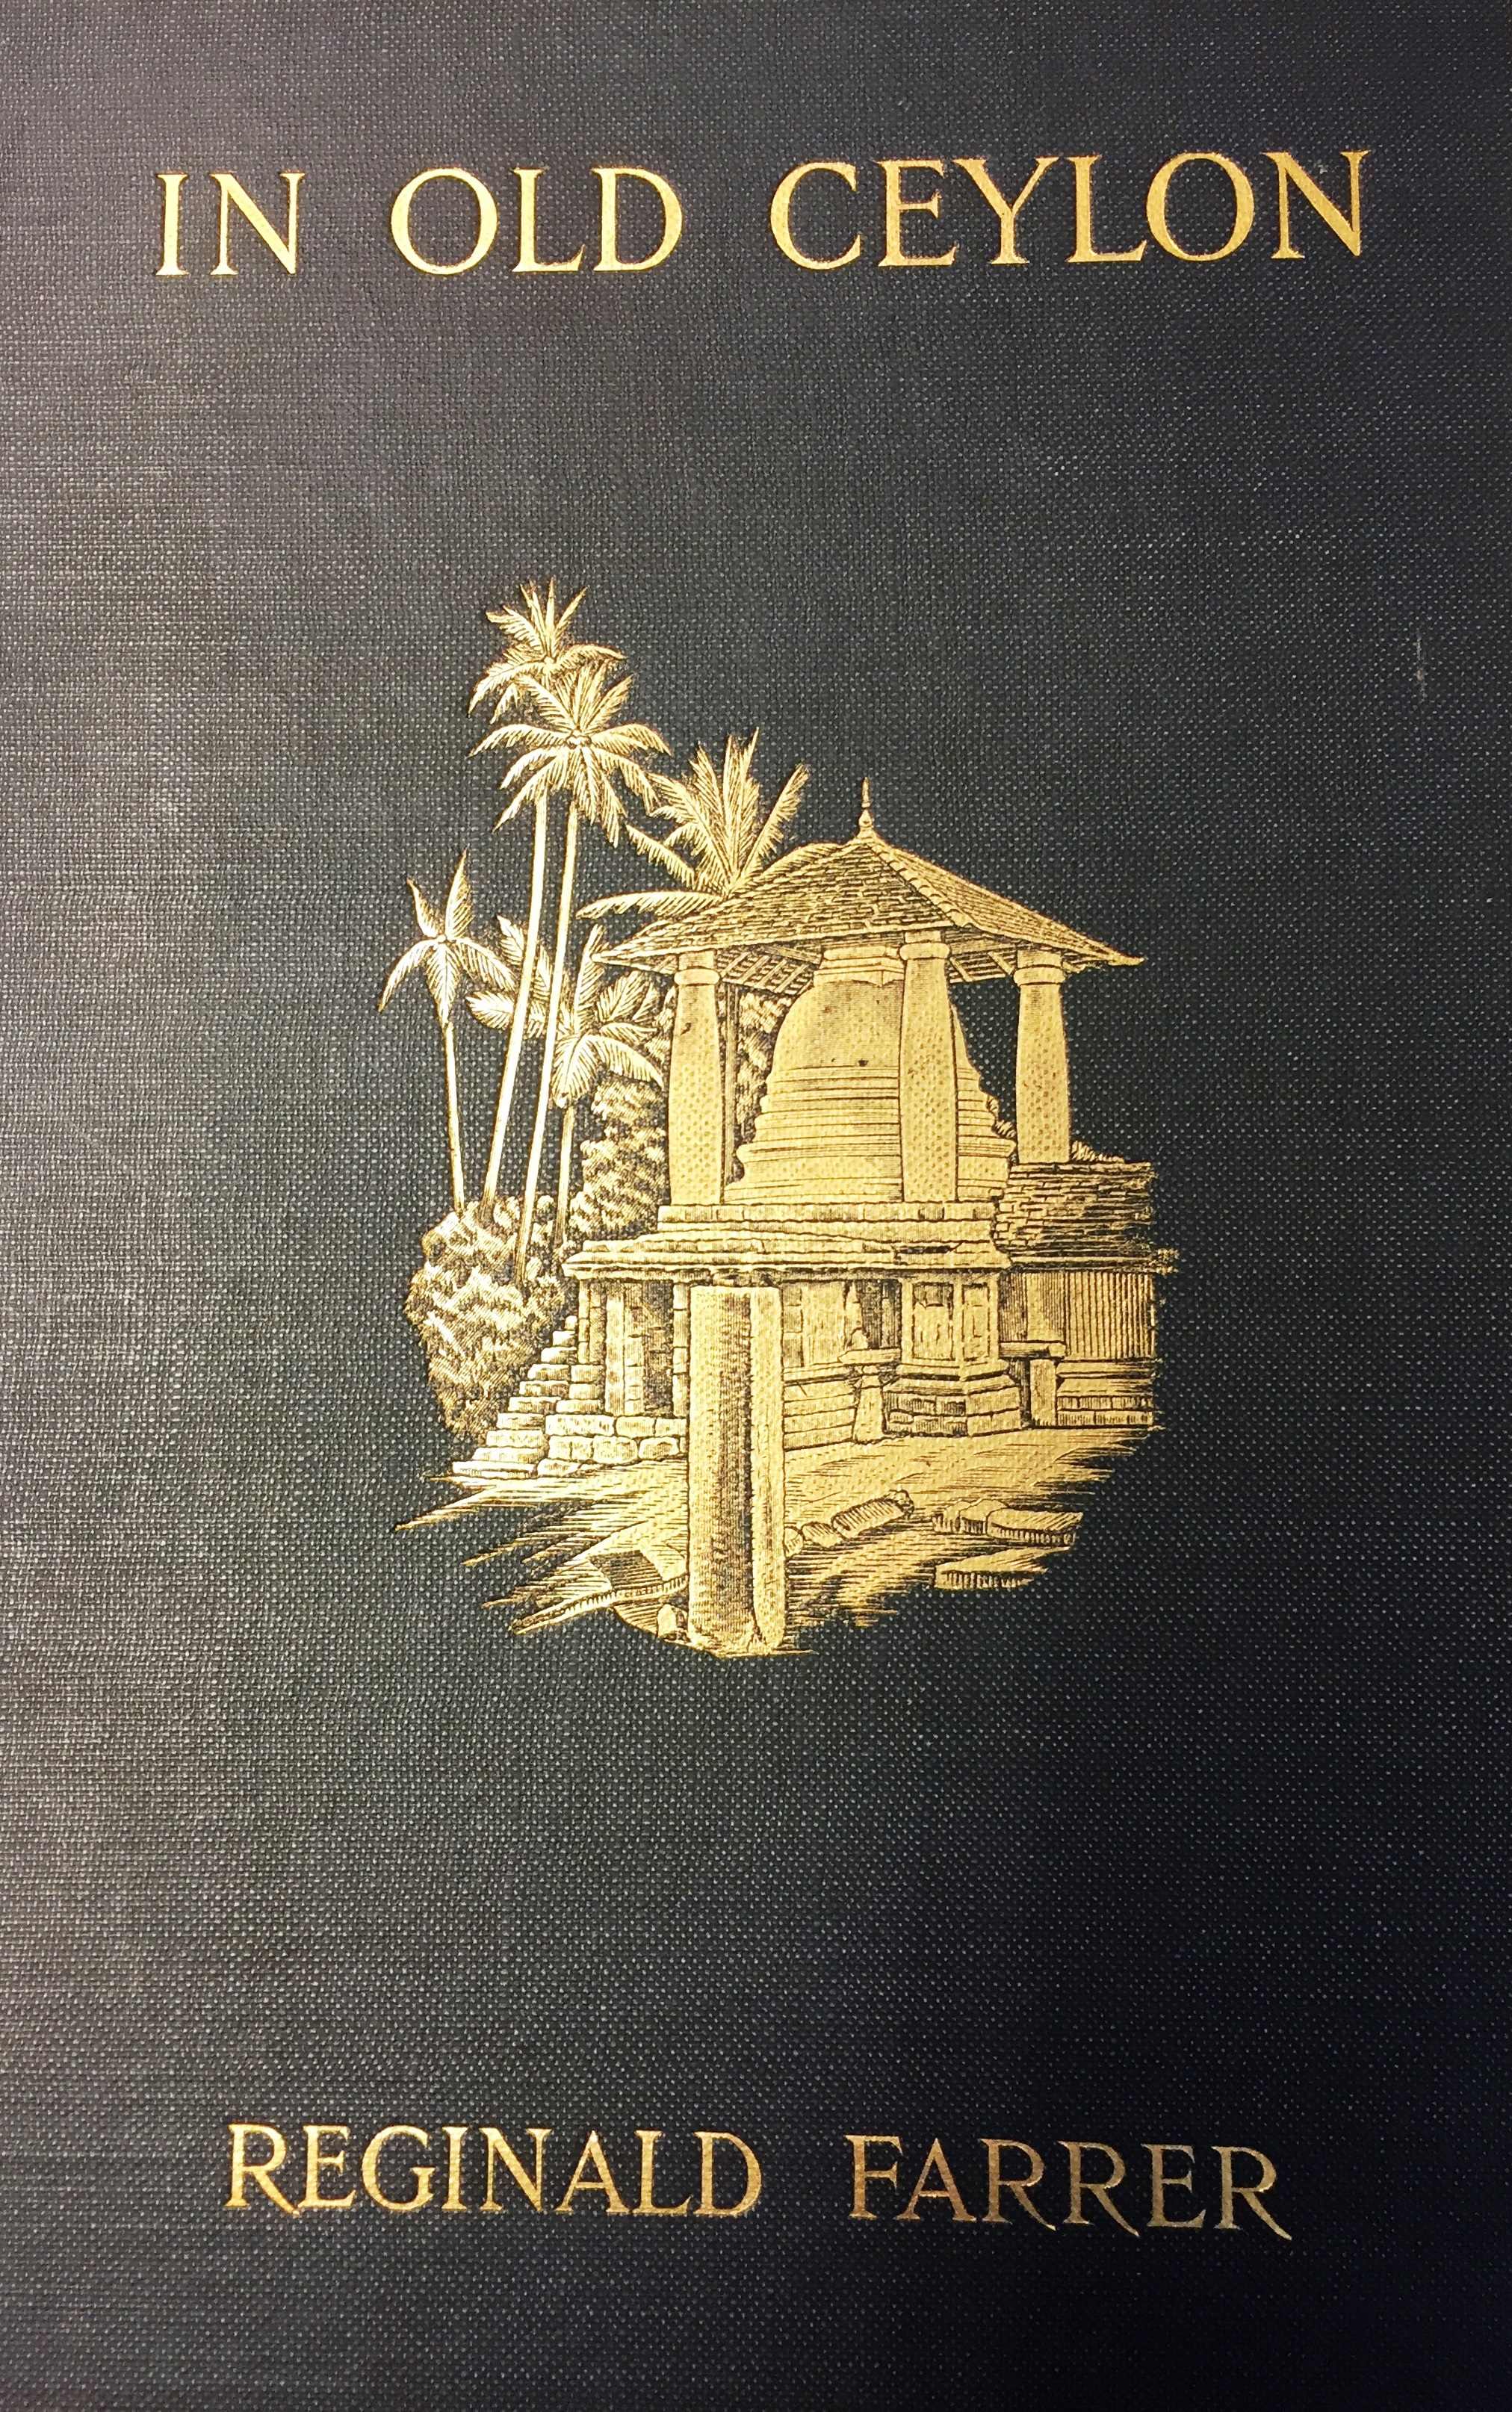 Front cover of 'In Old Ceylon' (1908, British Library, 010058.f.9)